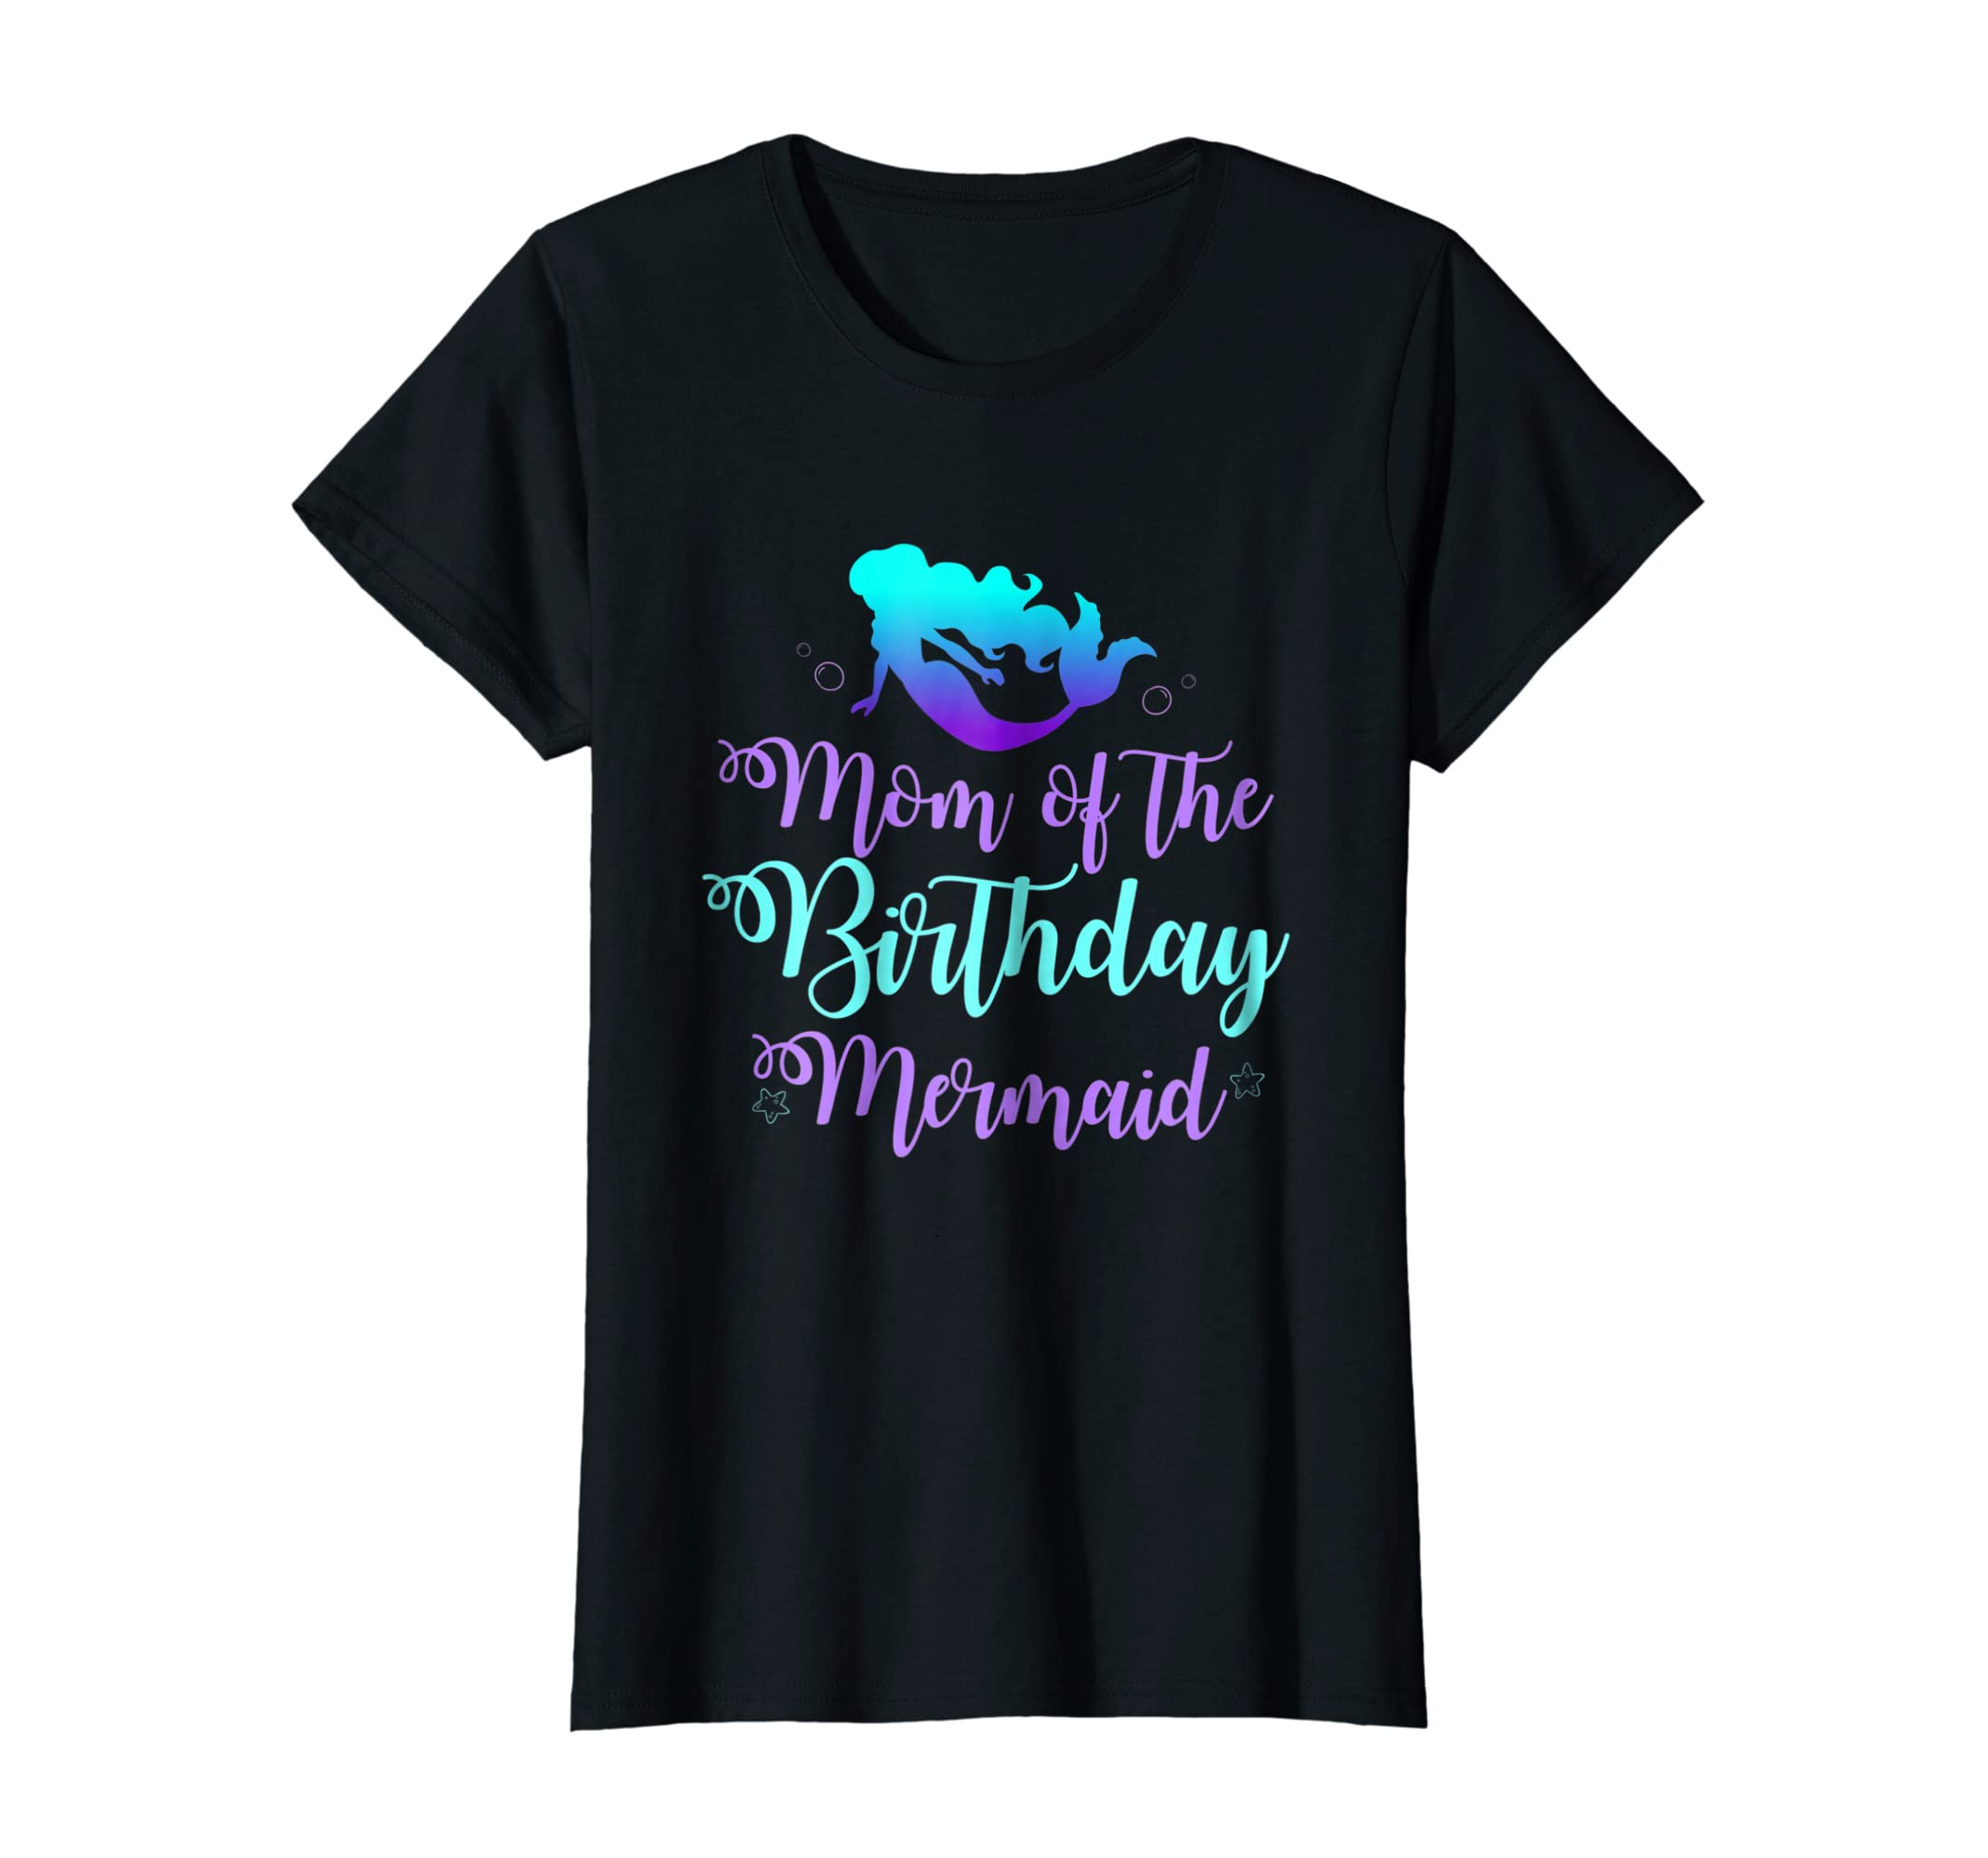 Mom of The Birthday Mermaid Party Outfit Shirts for Women-Teechatpro